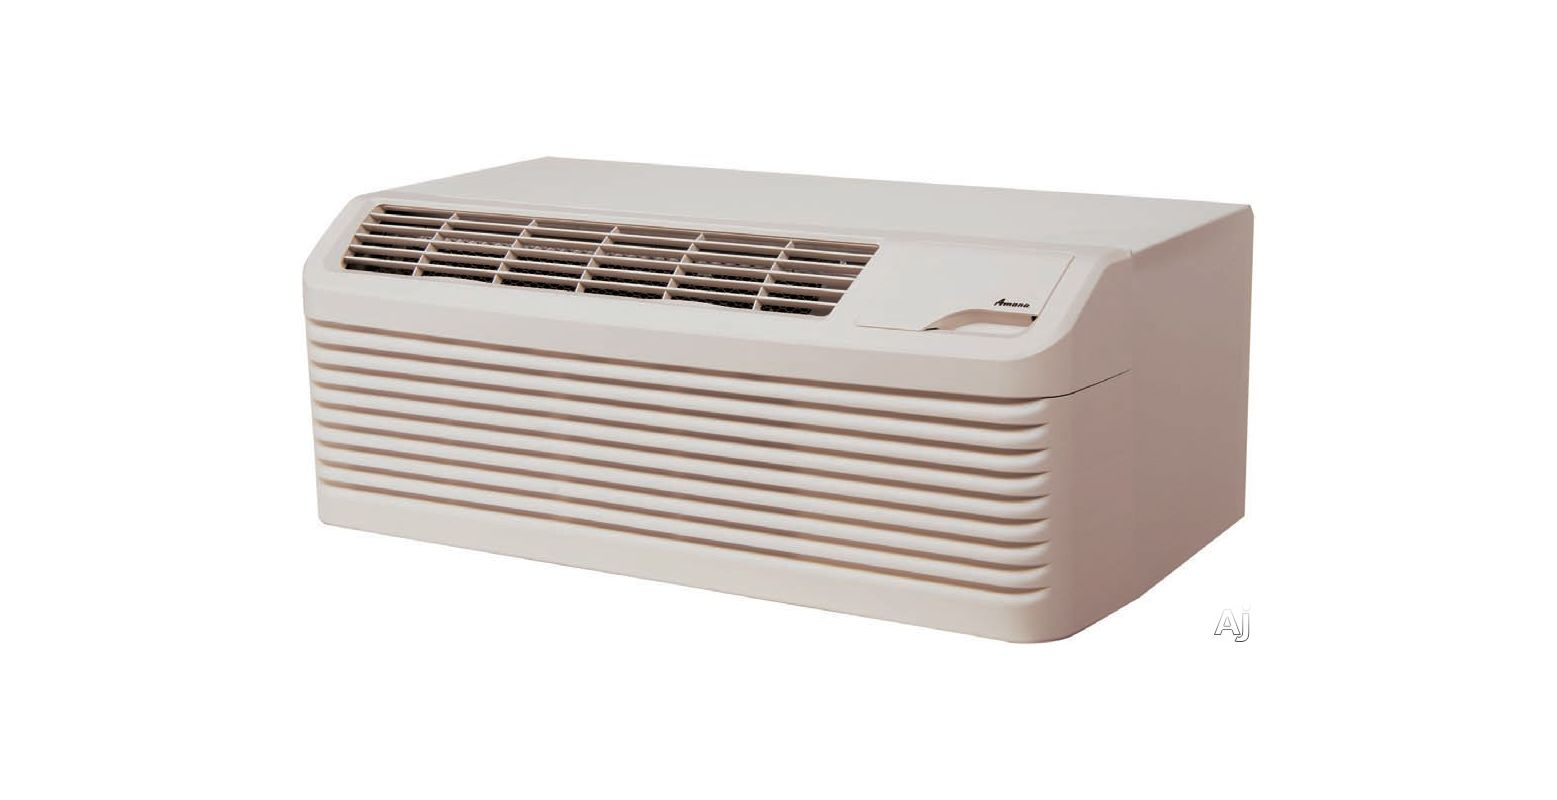 Amana PTC123G35CXXX 12,000 BTU Packaged Terminal Air Conditioner with 3.5 kW Ele photo